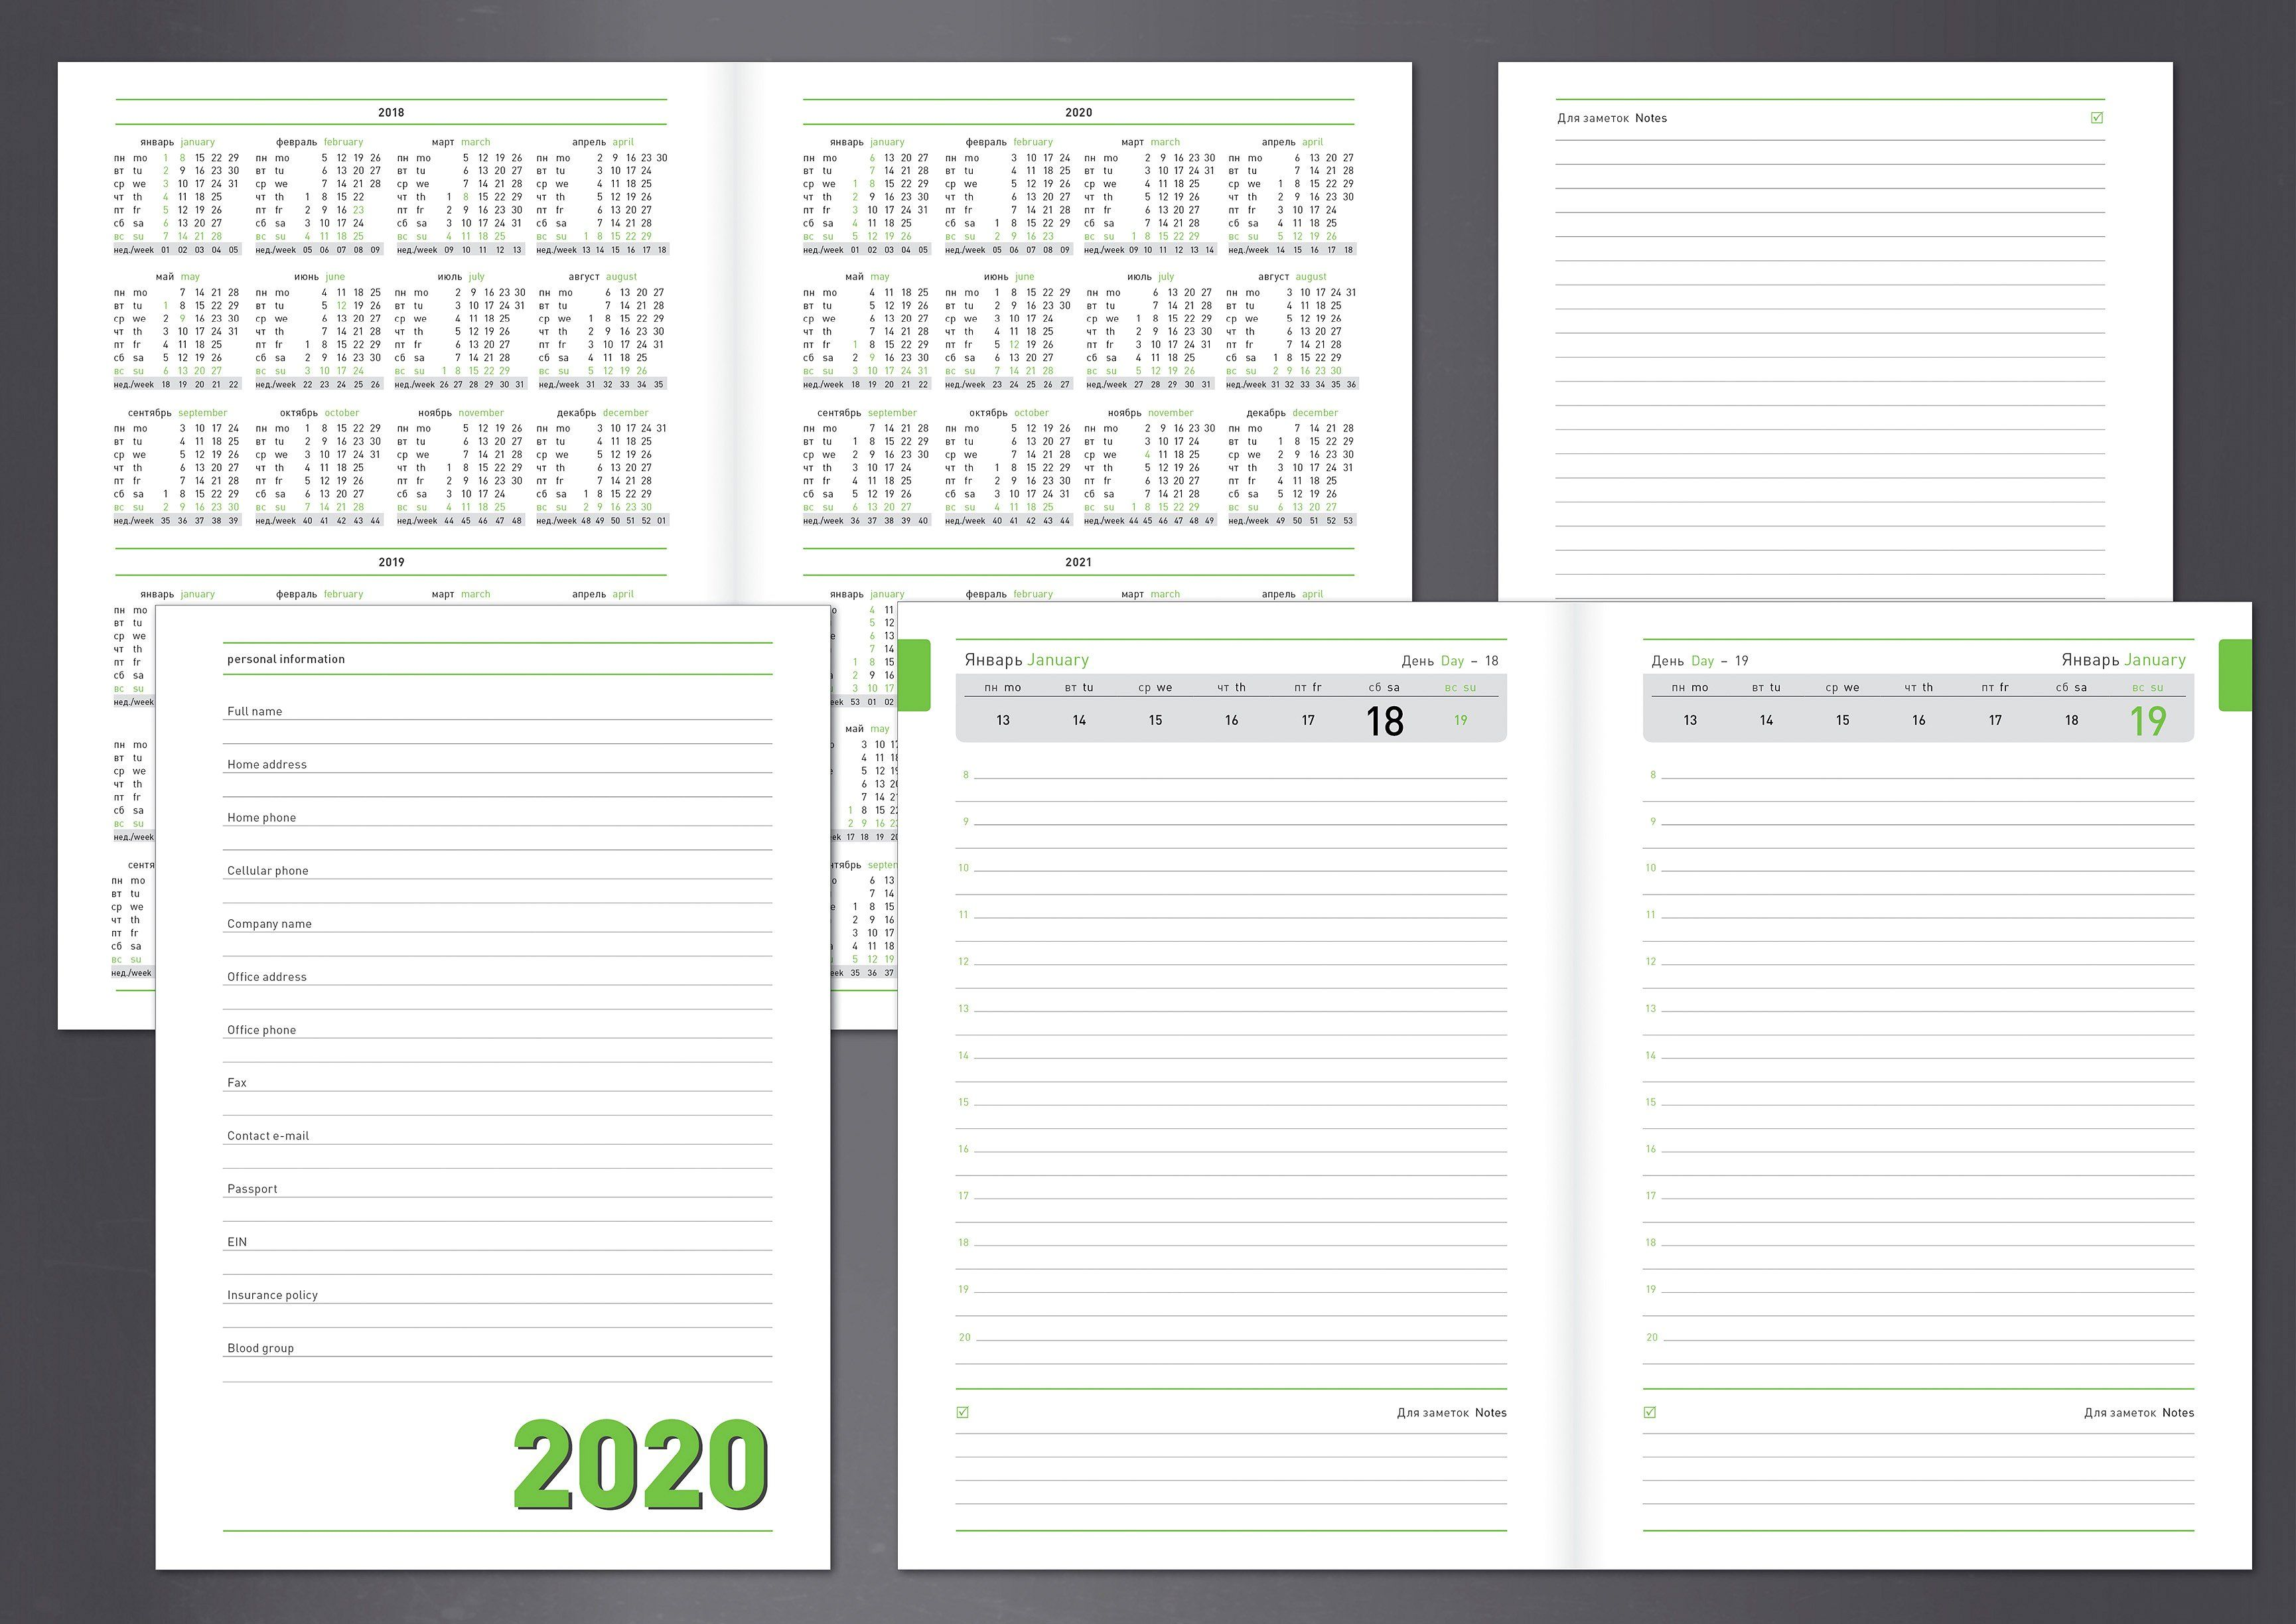 Datebook 2020 Diary Daily Planner Daily Planner Business Diary